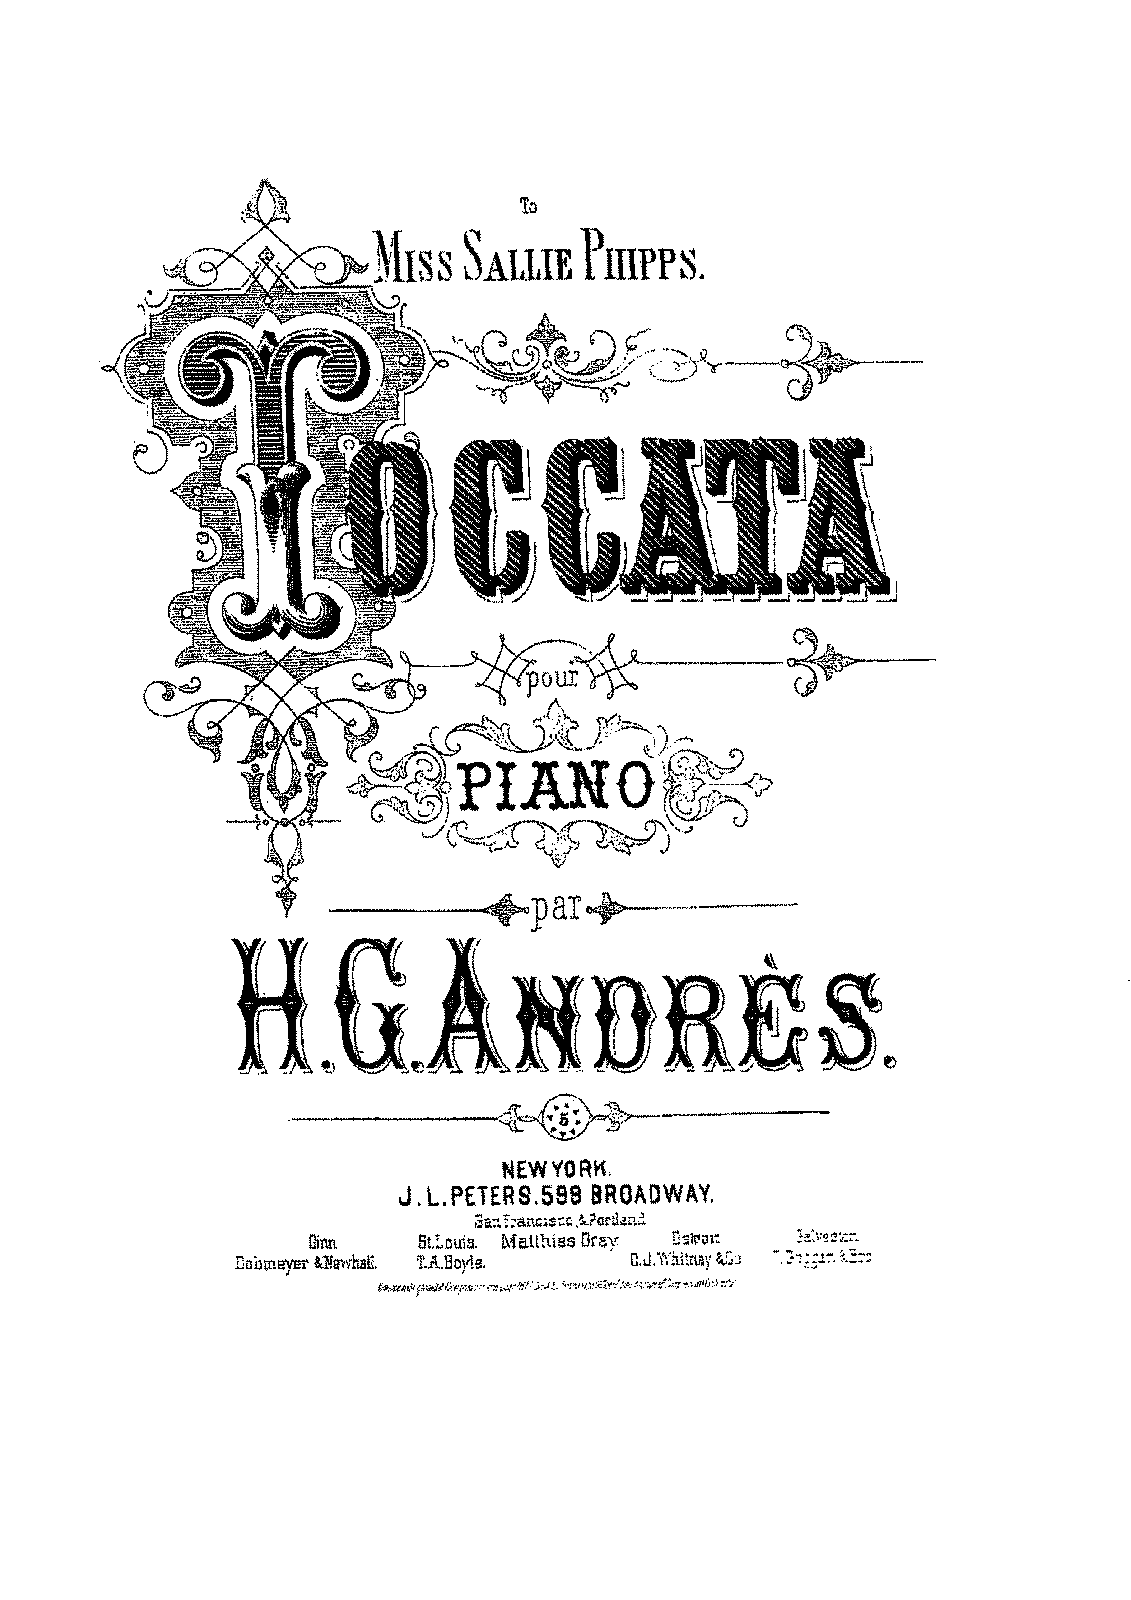 PMLP616935-Andres, Henry George - Toccata in B minor.pdf